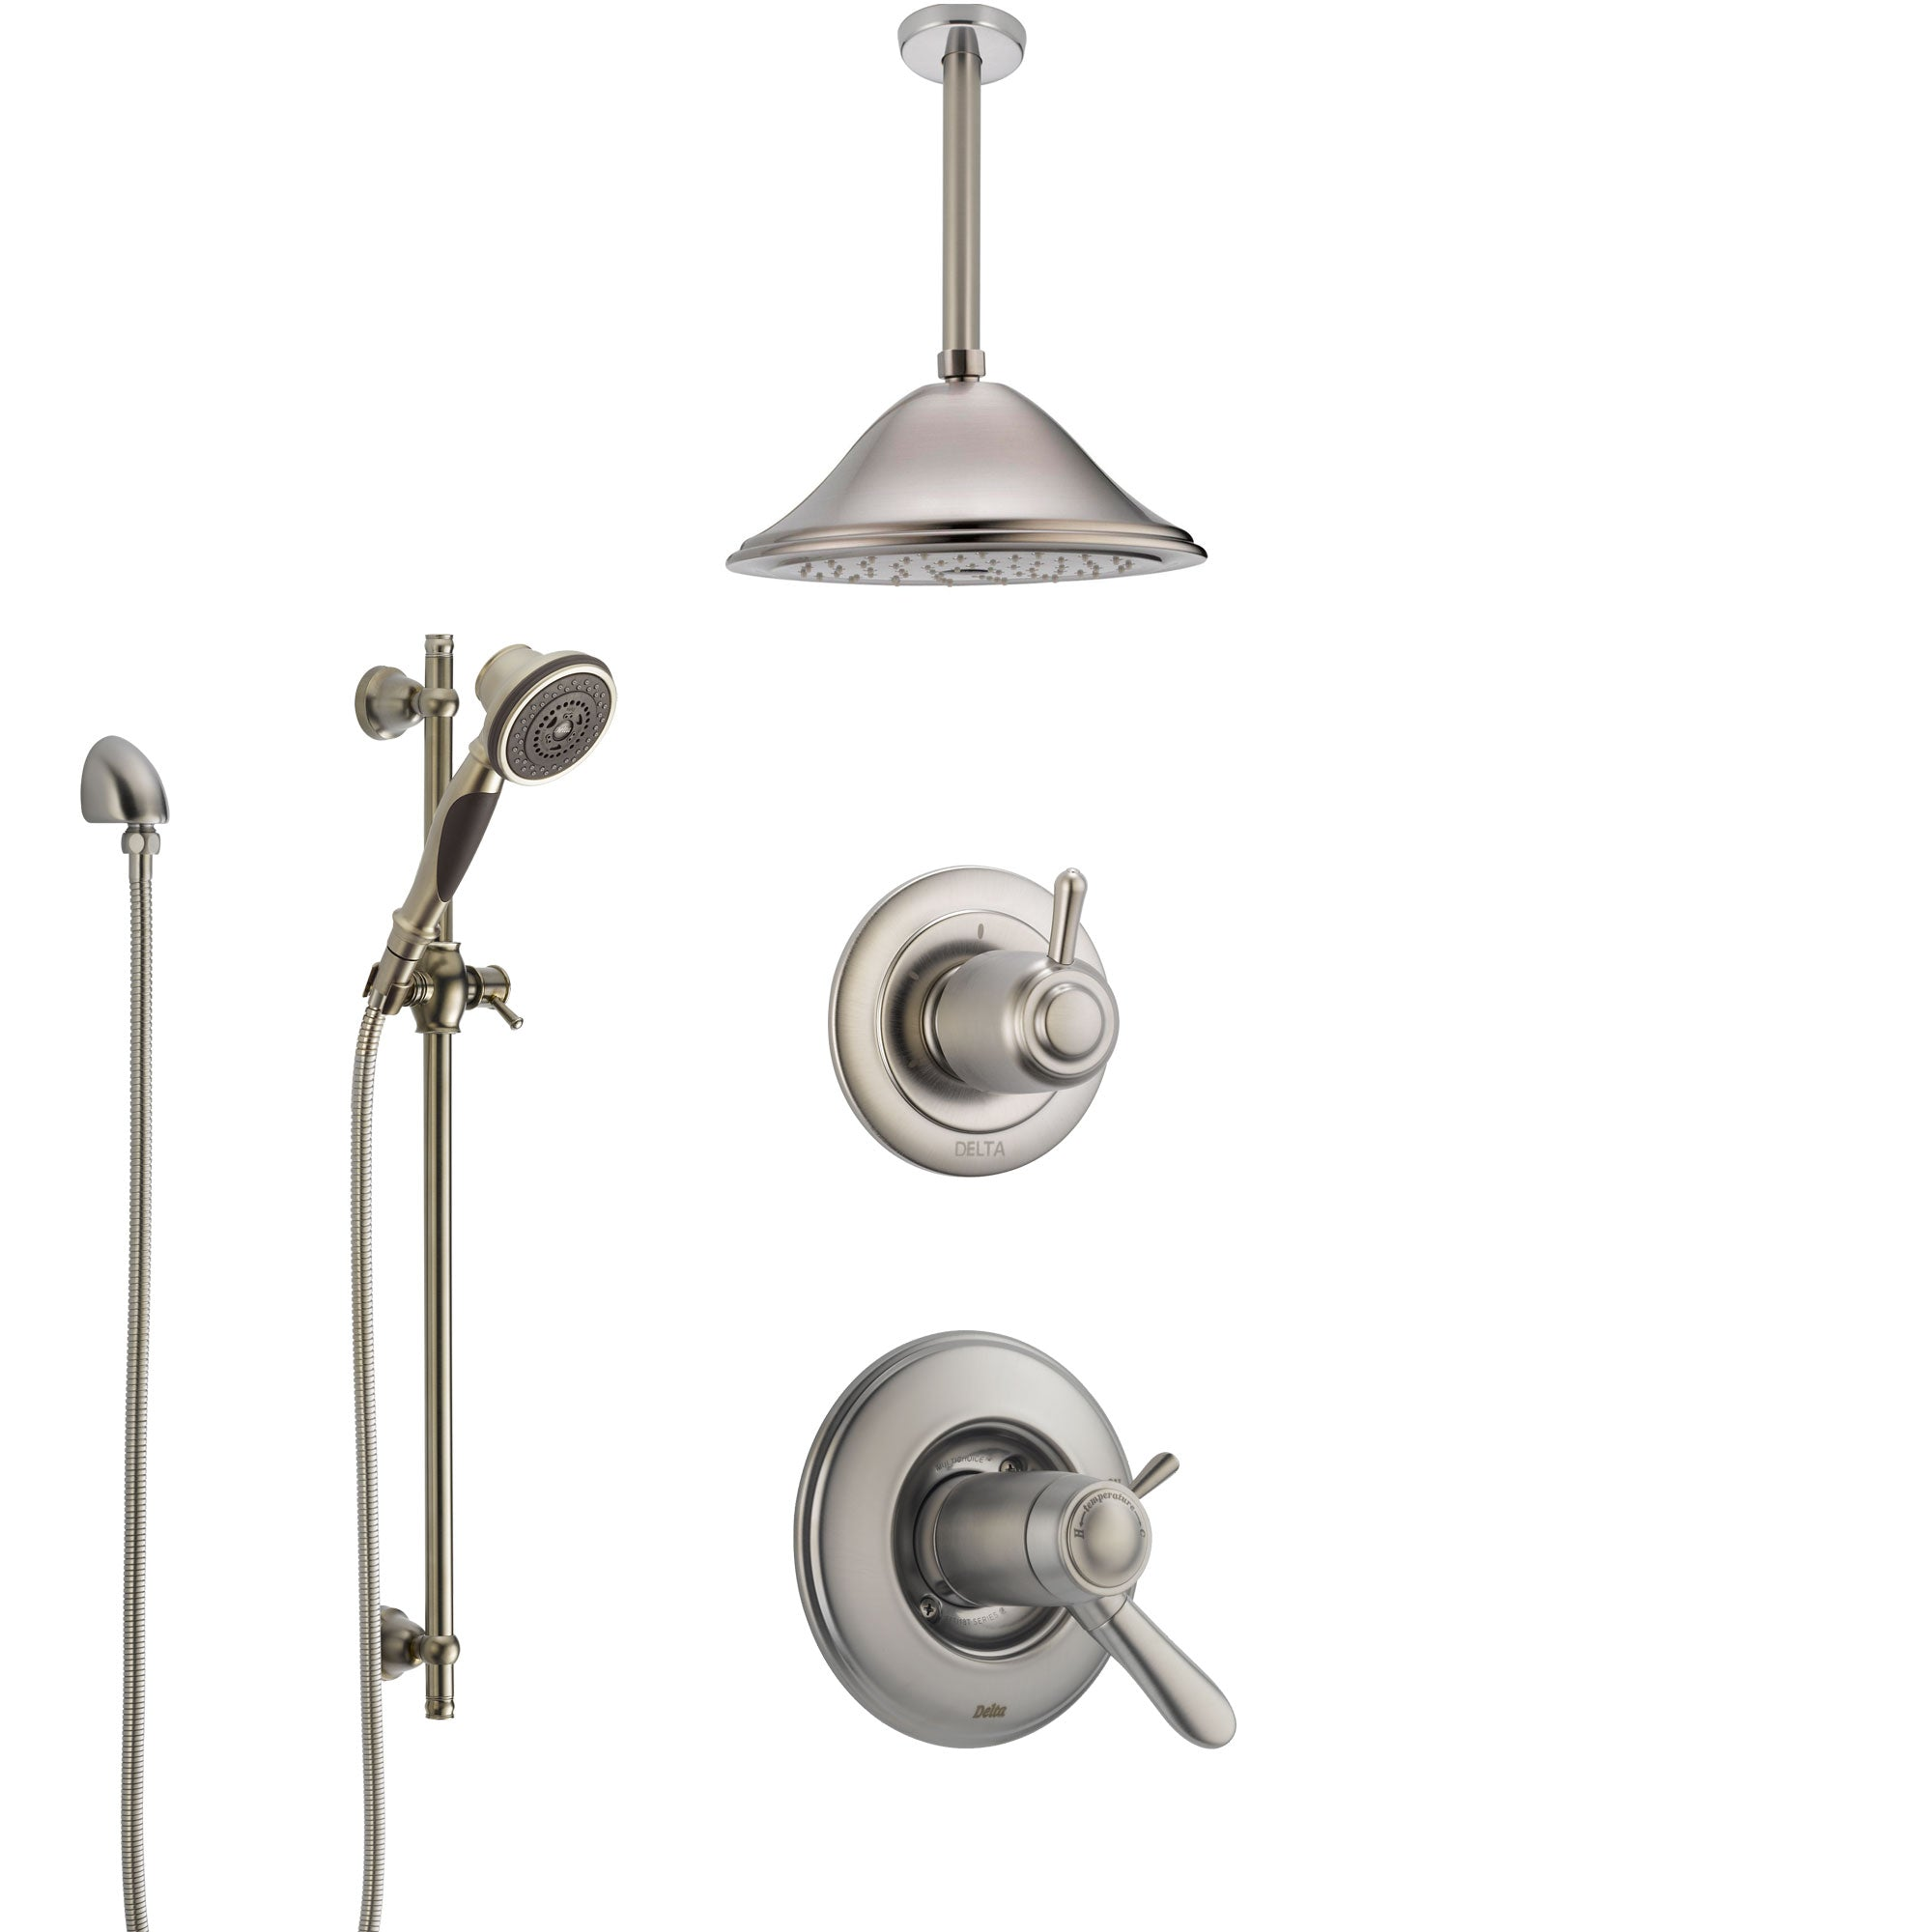 Delta Lahara Dual Thermostatic Control Handle Stainless Steel Finish Shower System, Diverter, Ceiling Mount Showerhead, and Hand Shower SS17T381SS5